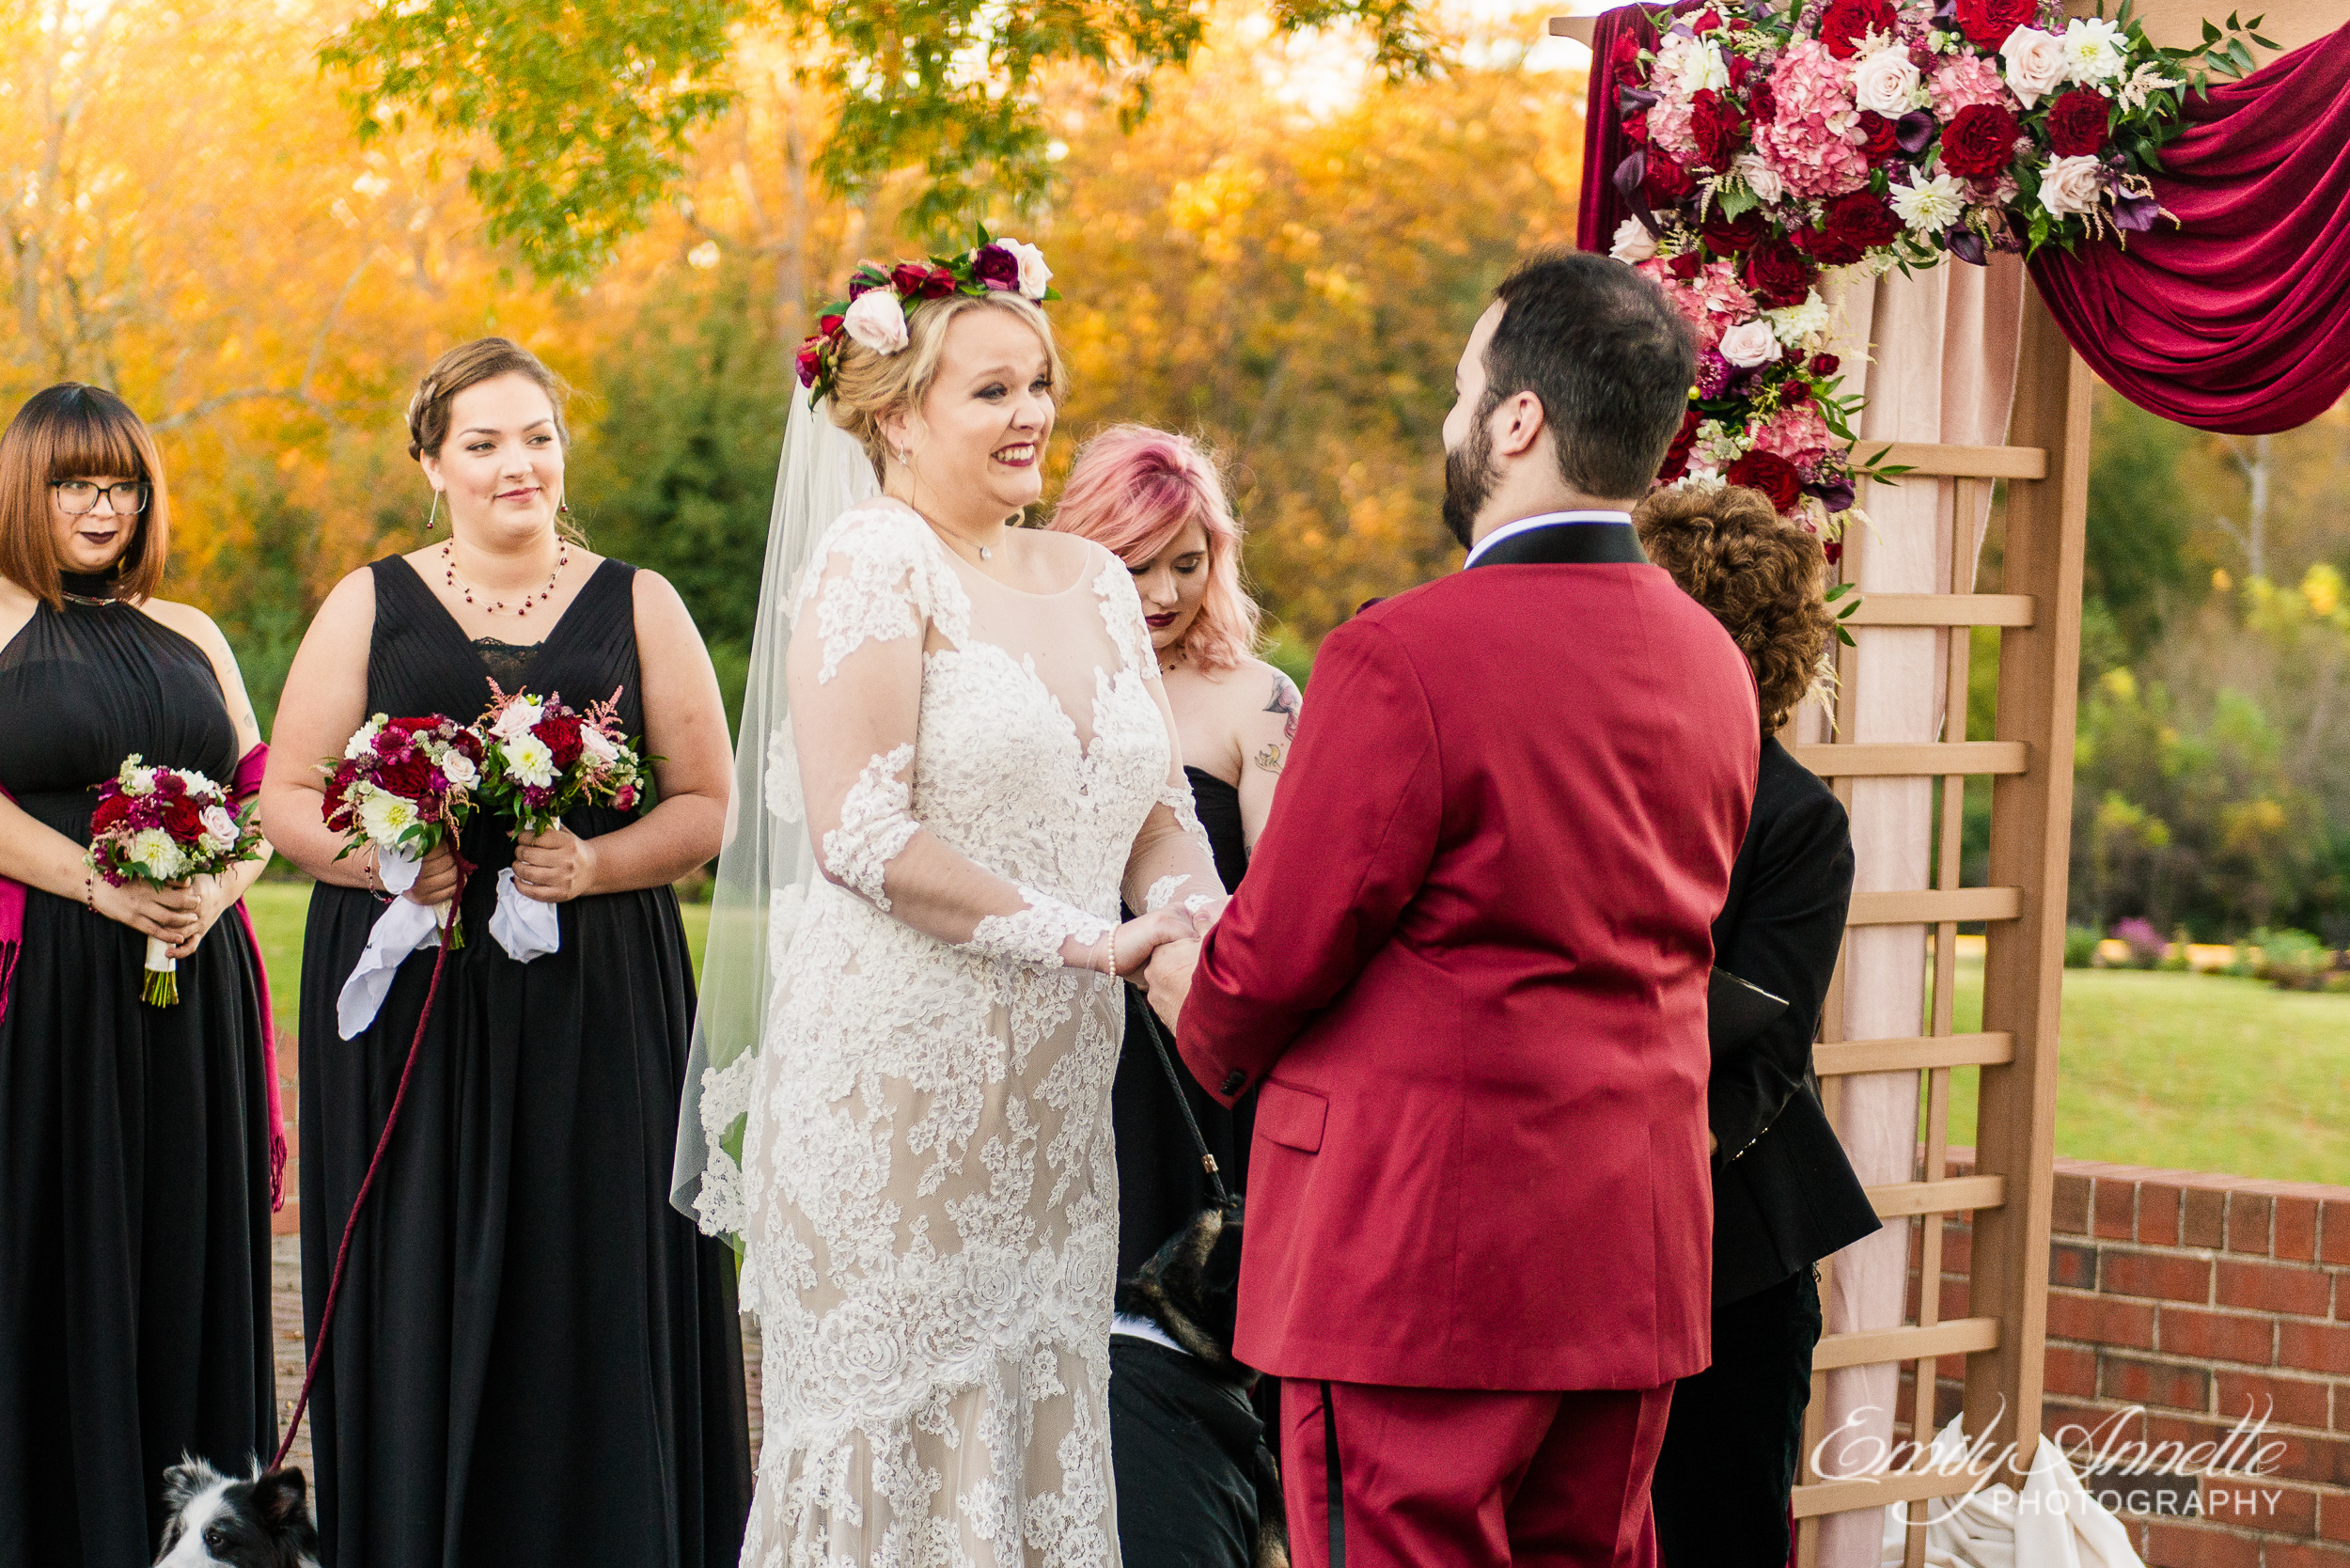 A bride smiles and laughs at her groom while holding his hand at the altar during an outdoor wedding ceremony at Willow Oaks Country Club in Richmond, Virginia